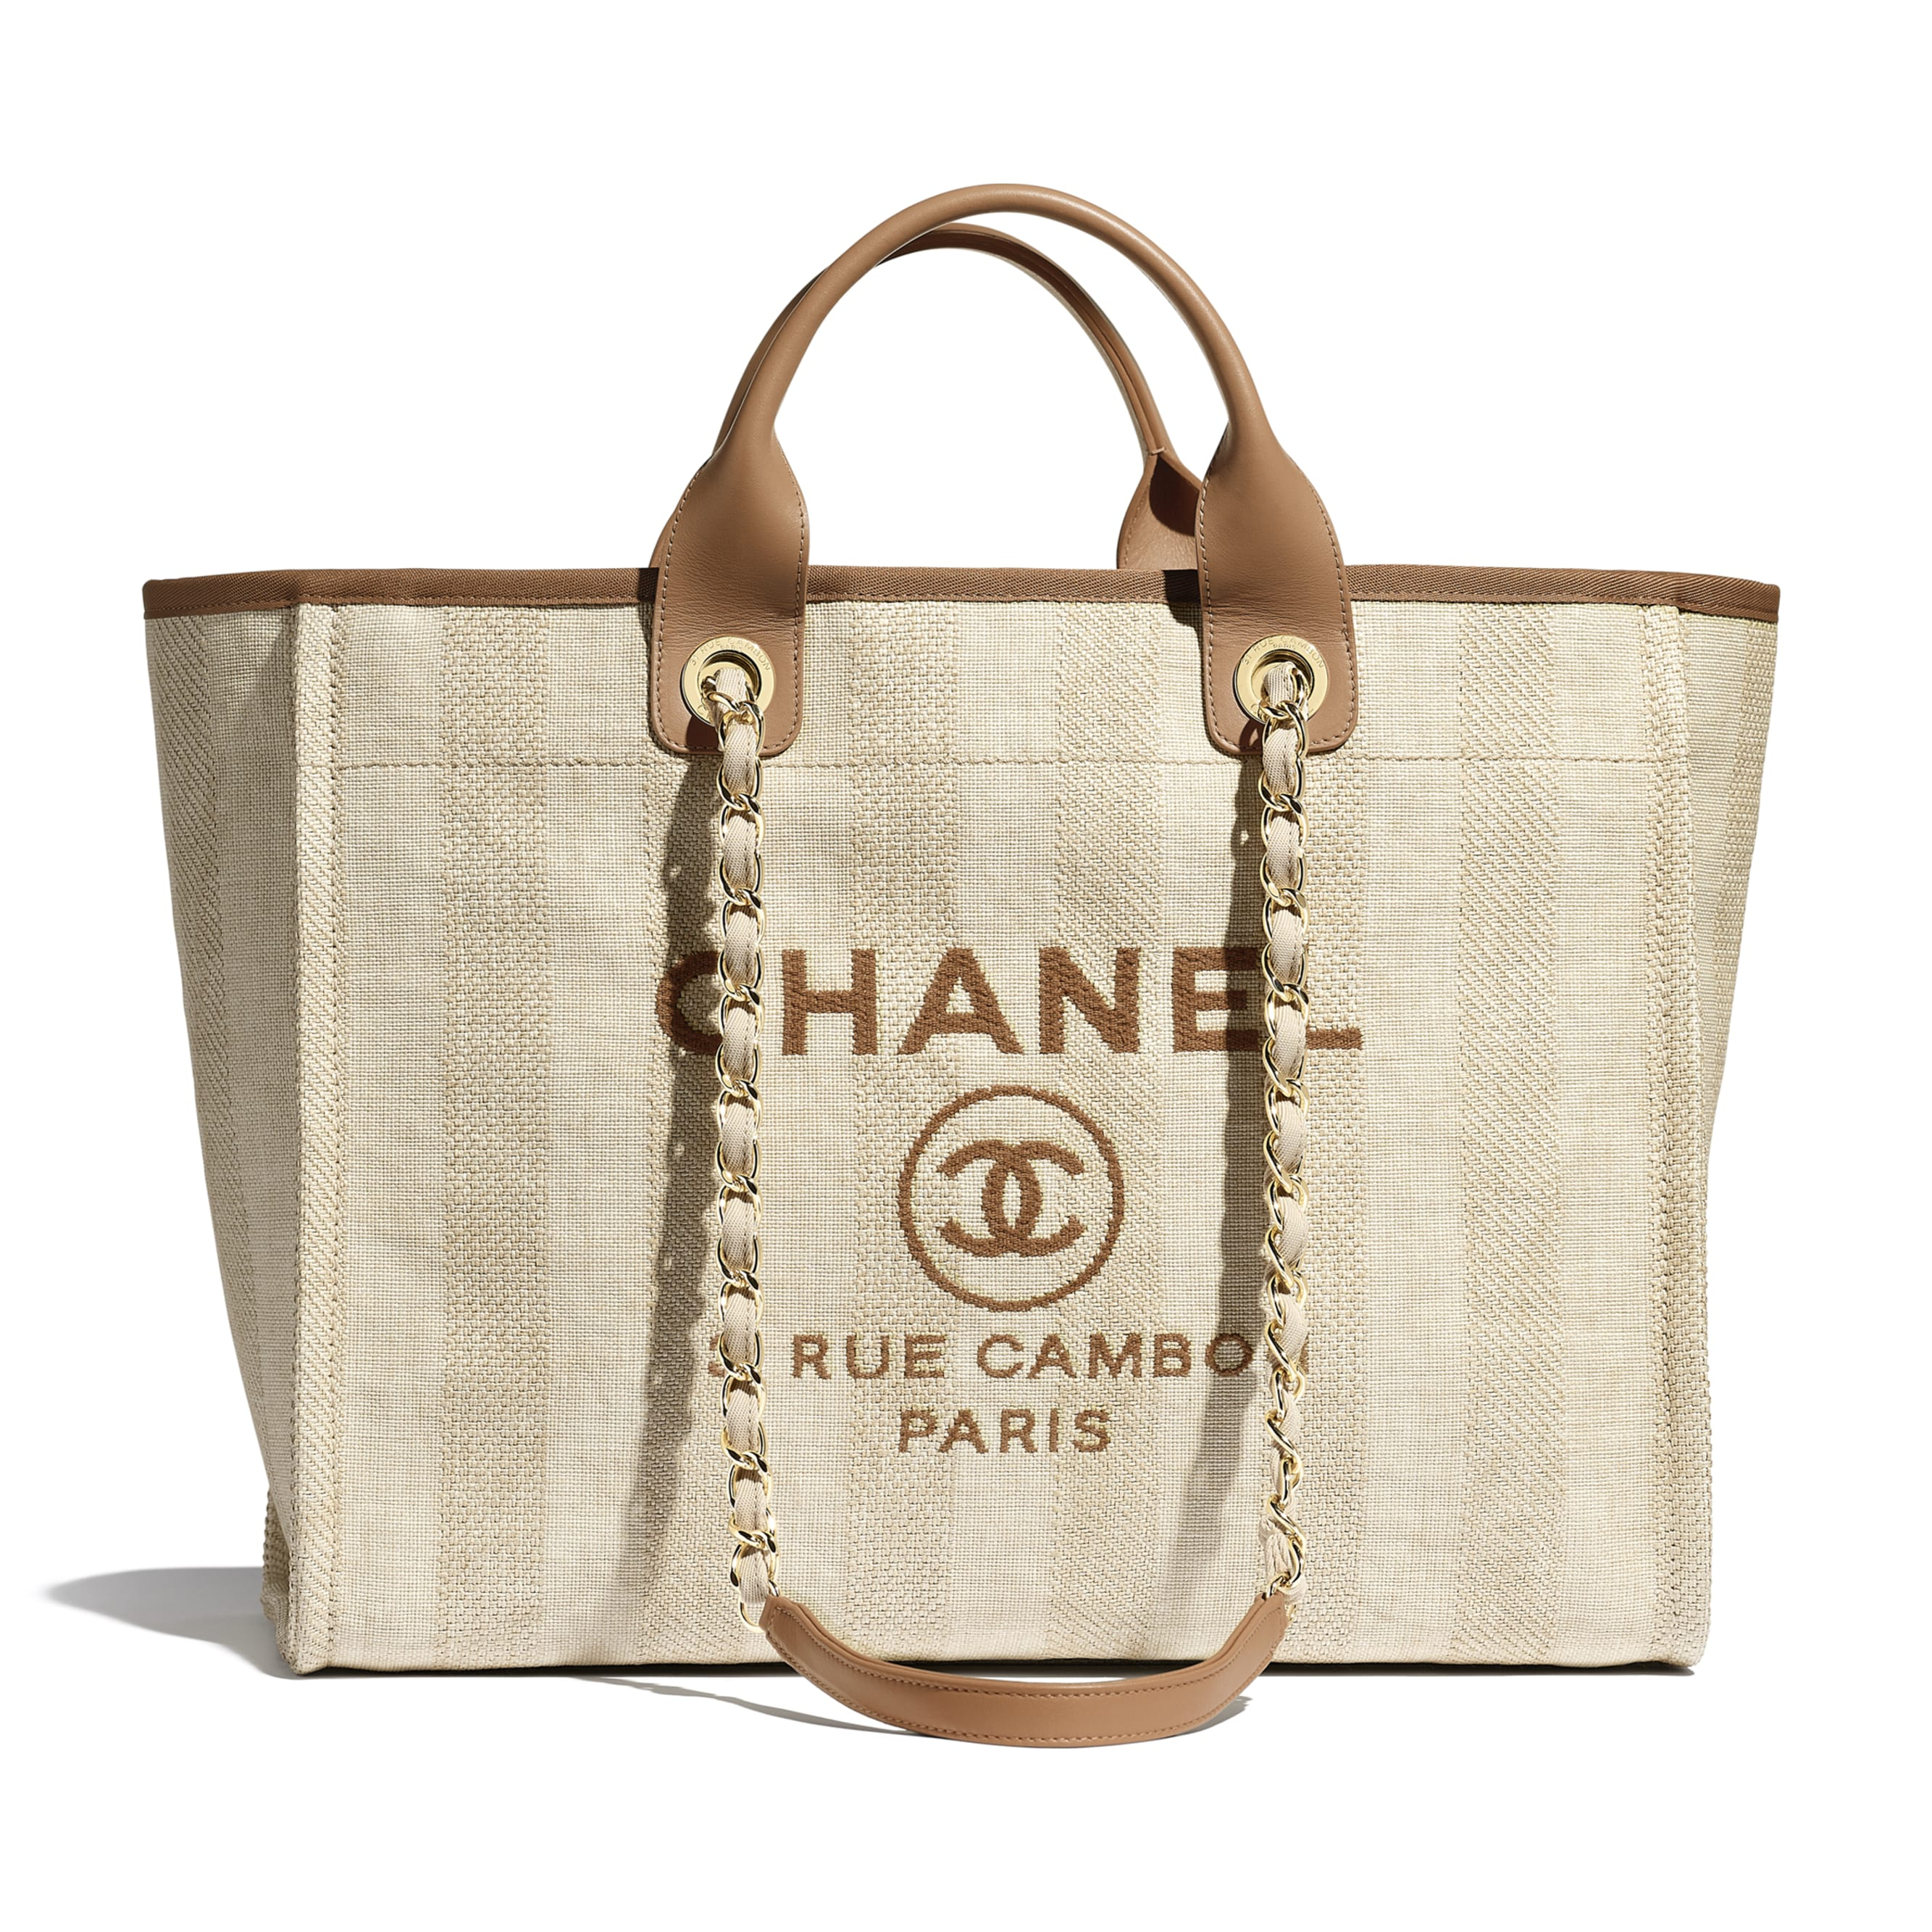 Shopping Bag - Beige - Mixed Fibres, Calfskin & Gold-Tone Metal - CHANEL - Default view - see standard sized version